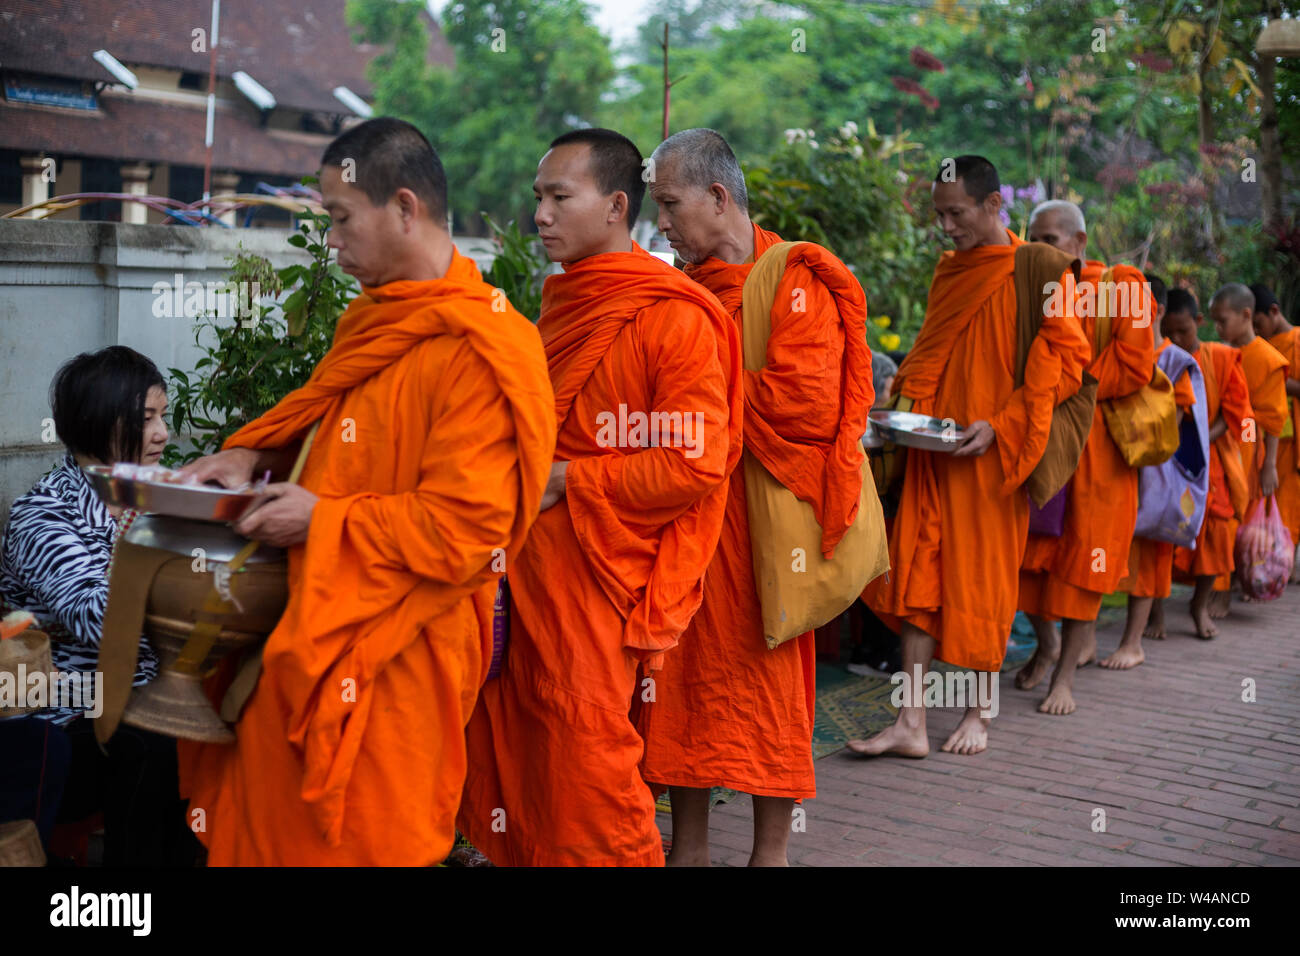 People giving alms to Buddhist monks on the street early in the morning in Luang Prabang, Laos. The ritual is called Tak Bat. Stock Photo